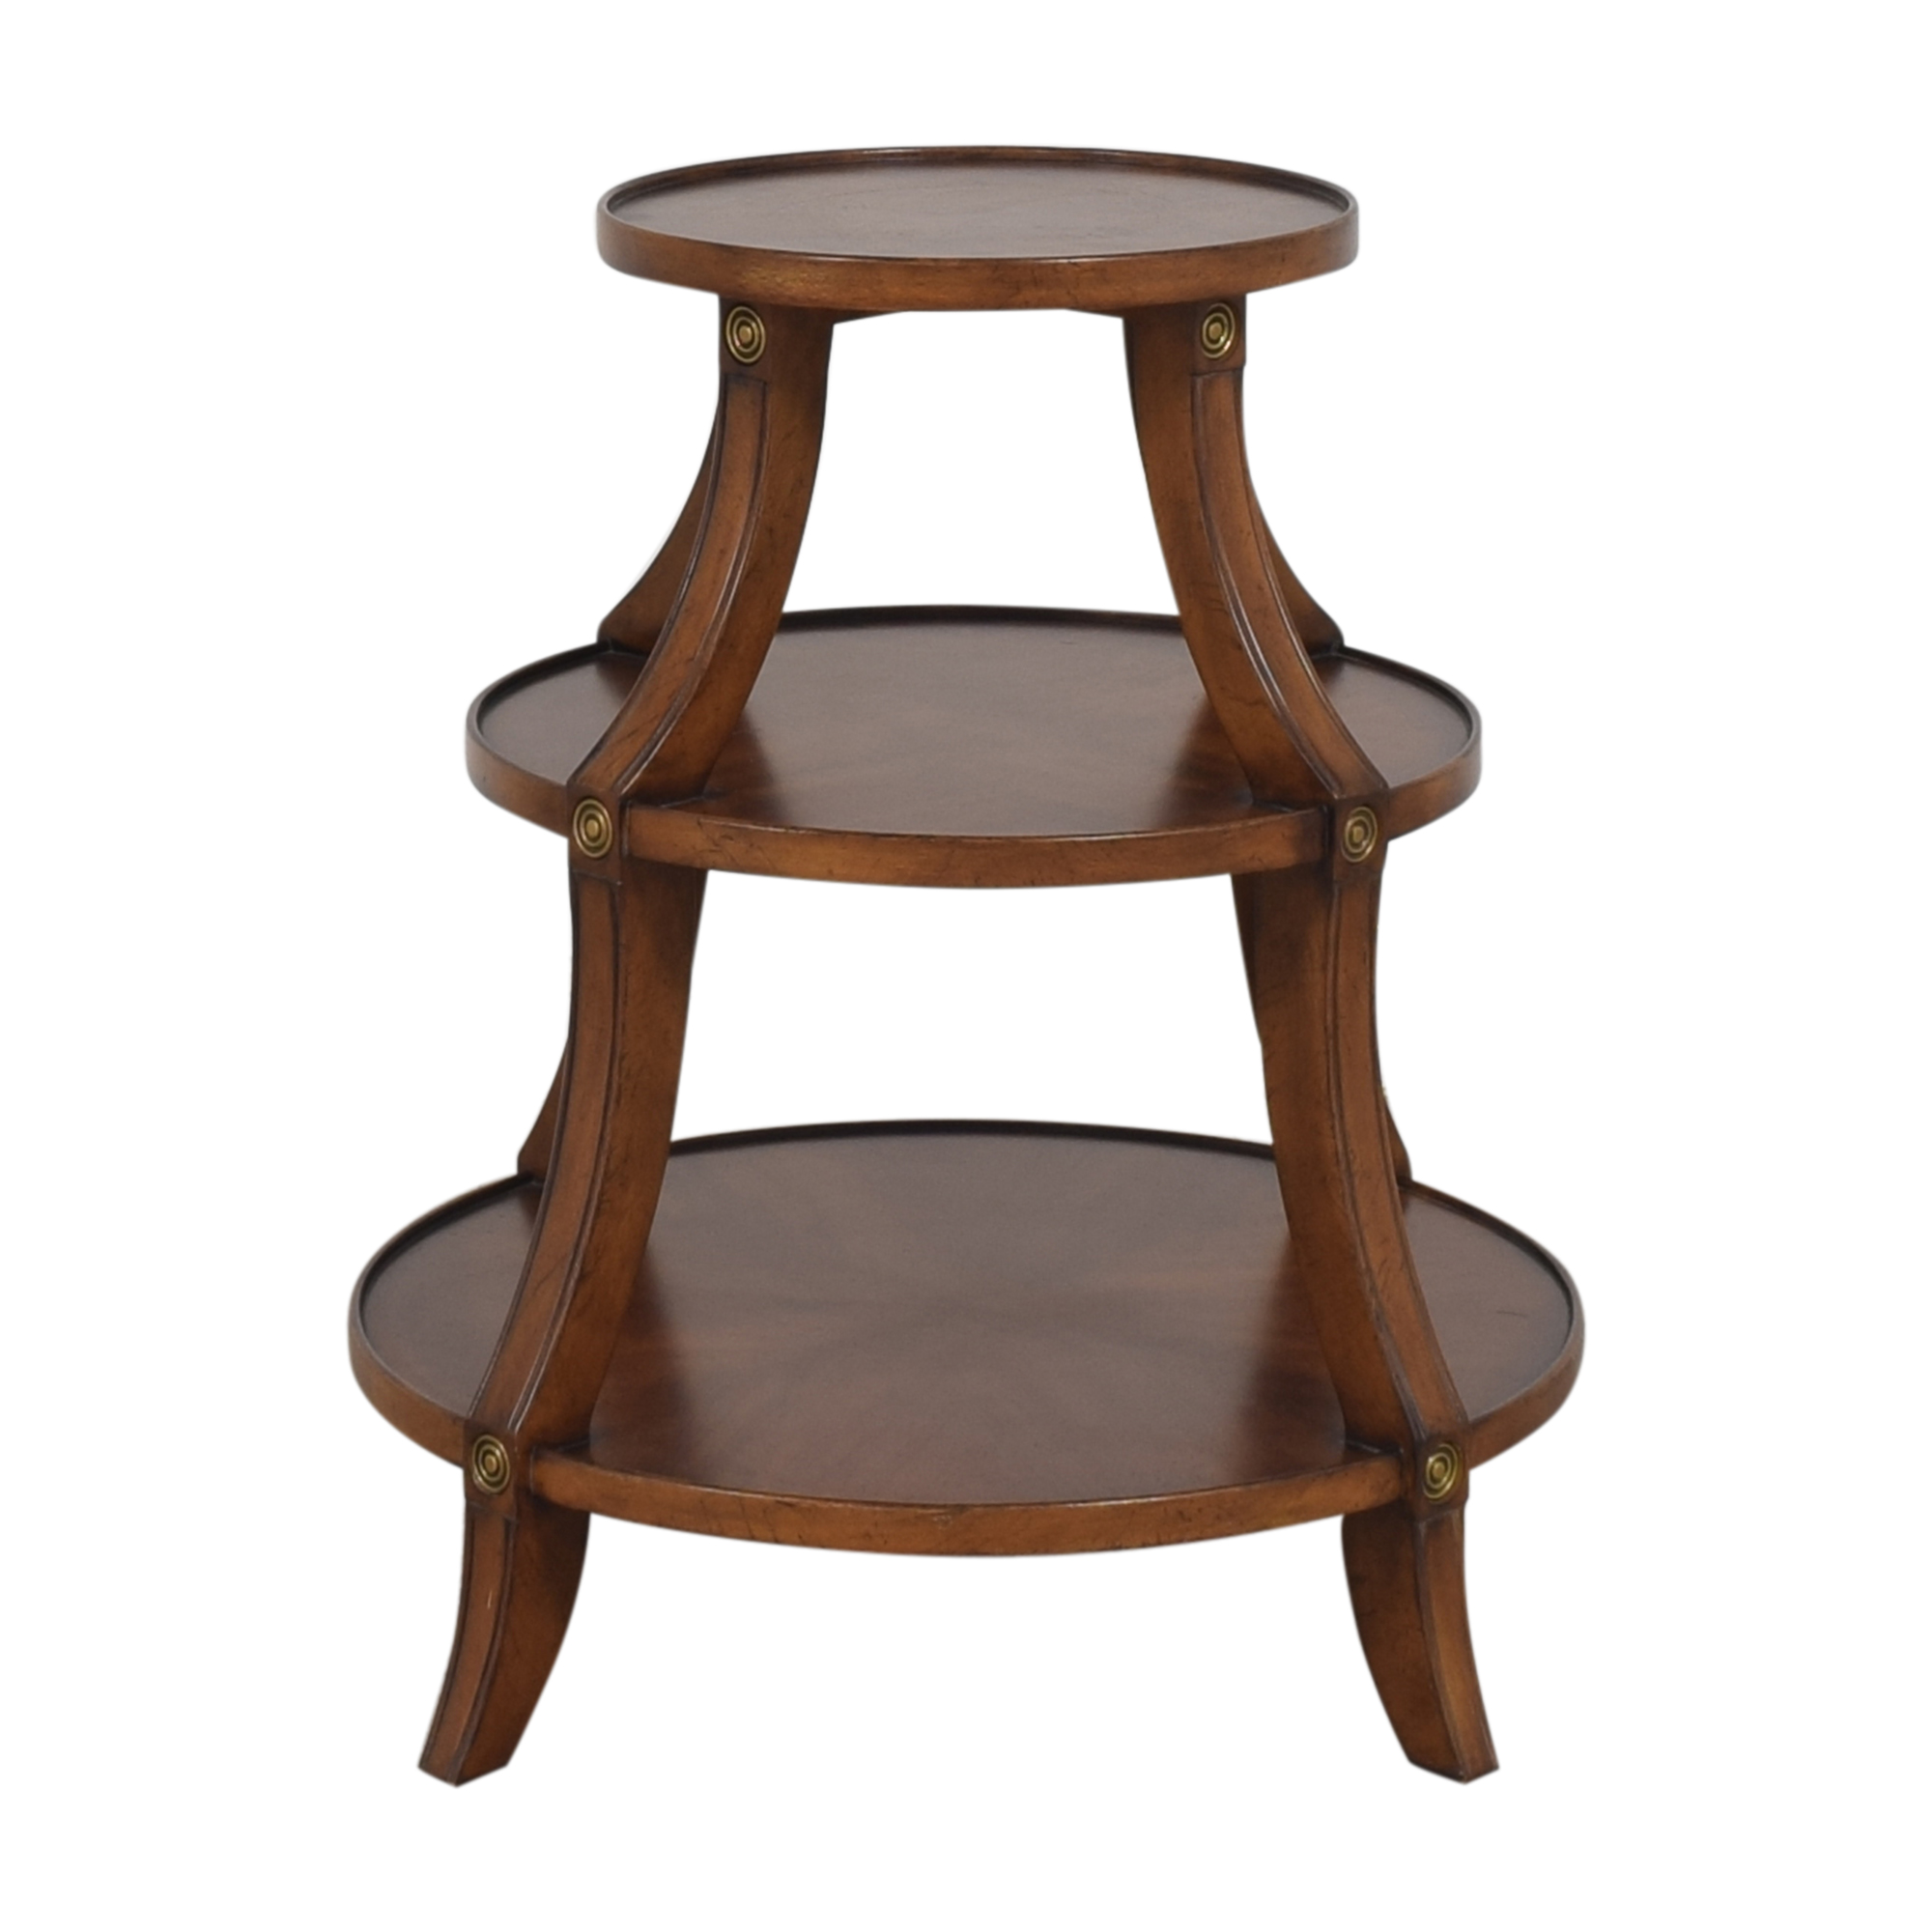 Ethan Allen Ethan Allen Tiered Accent Table price